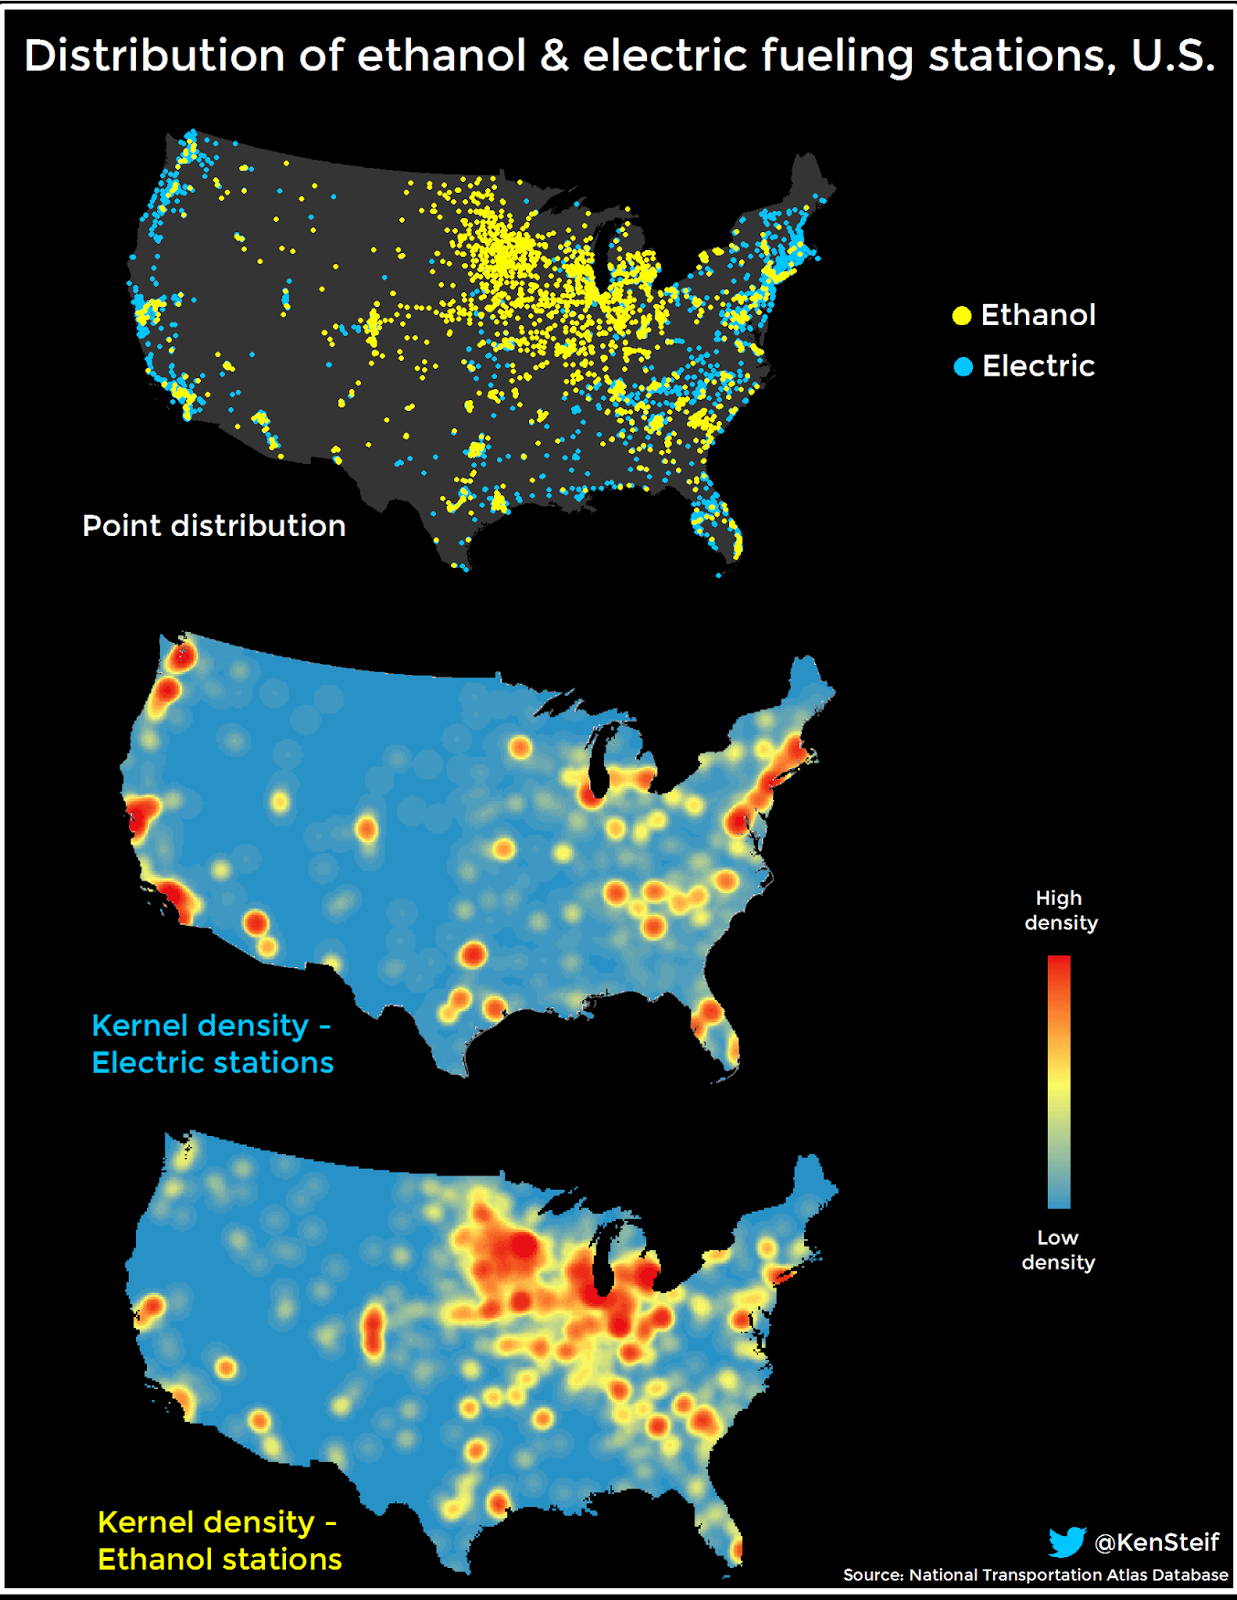 Distribution of electric and ethanol fuel stations in the United States